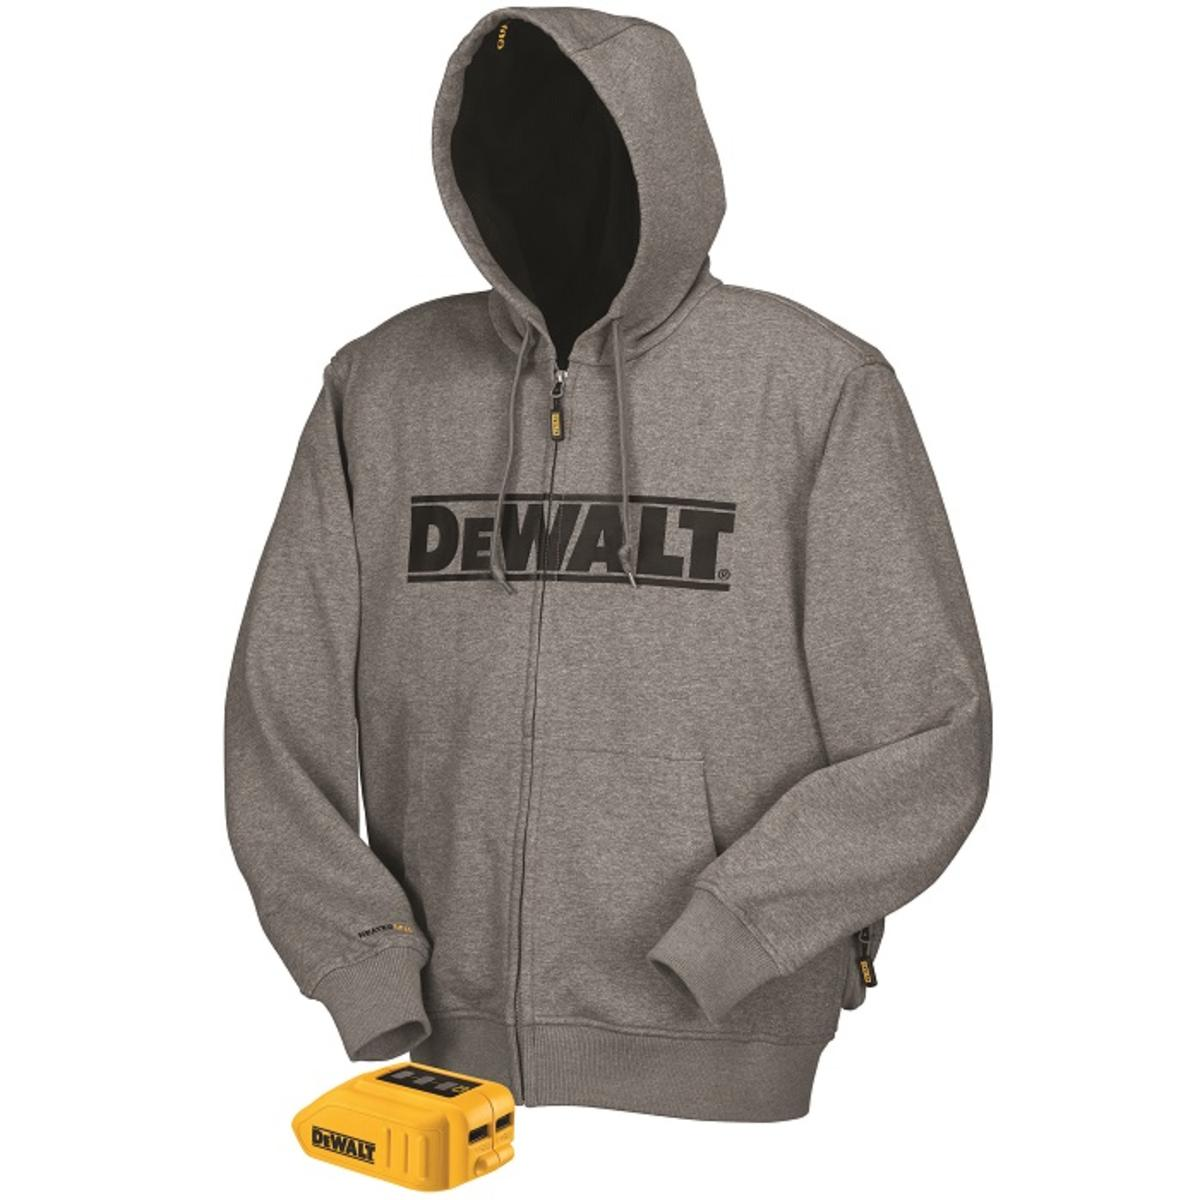 dbeca843b7 DeWalt 20V 12V MAX Heated Hoodie - Gray (Hoodie   Adapter Only) - The  Warming Store